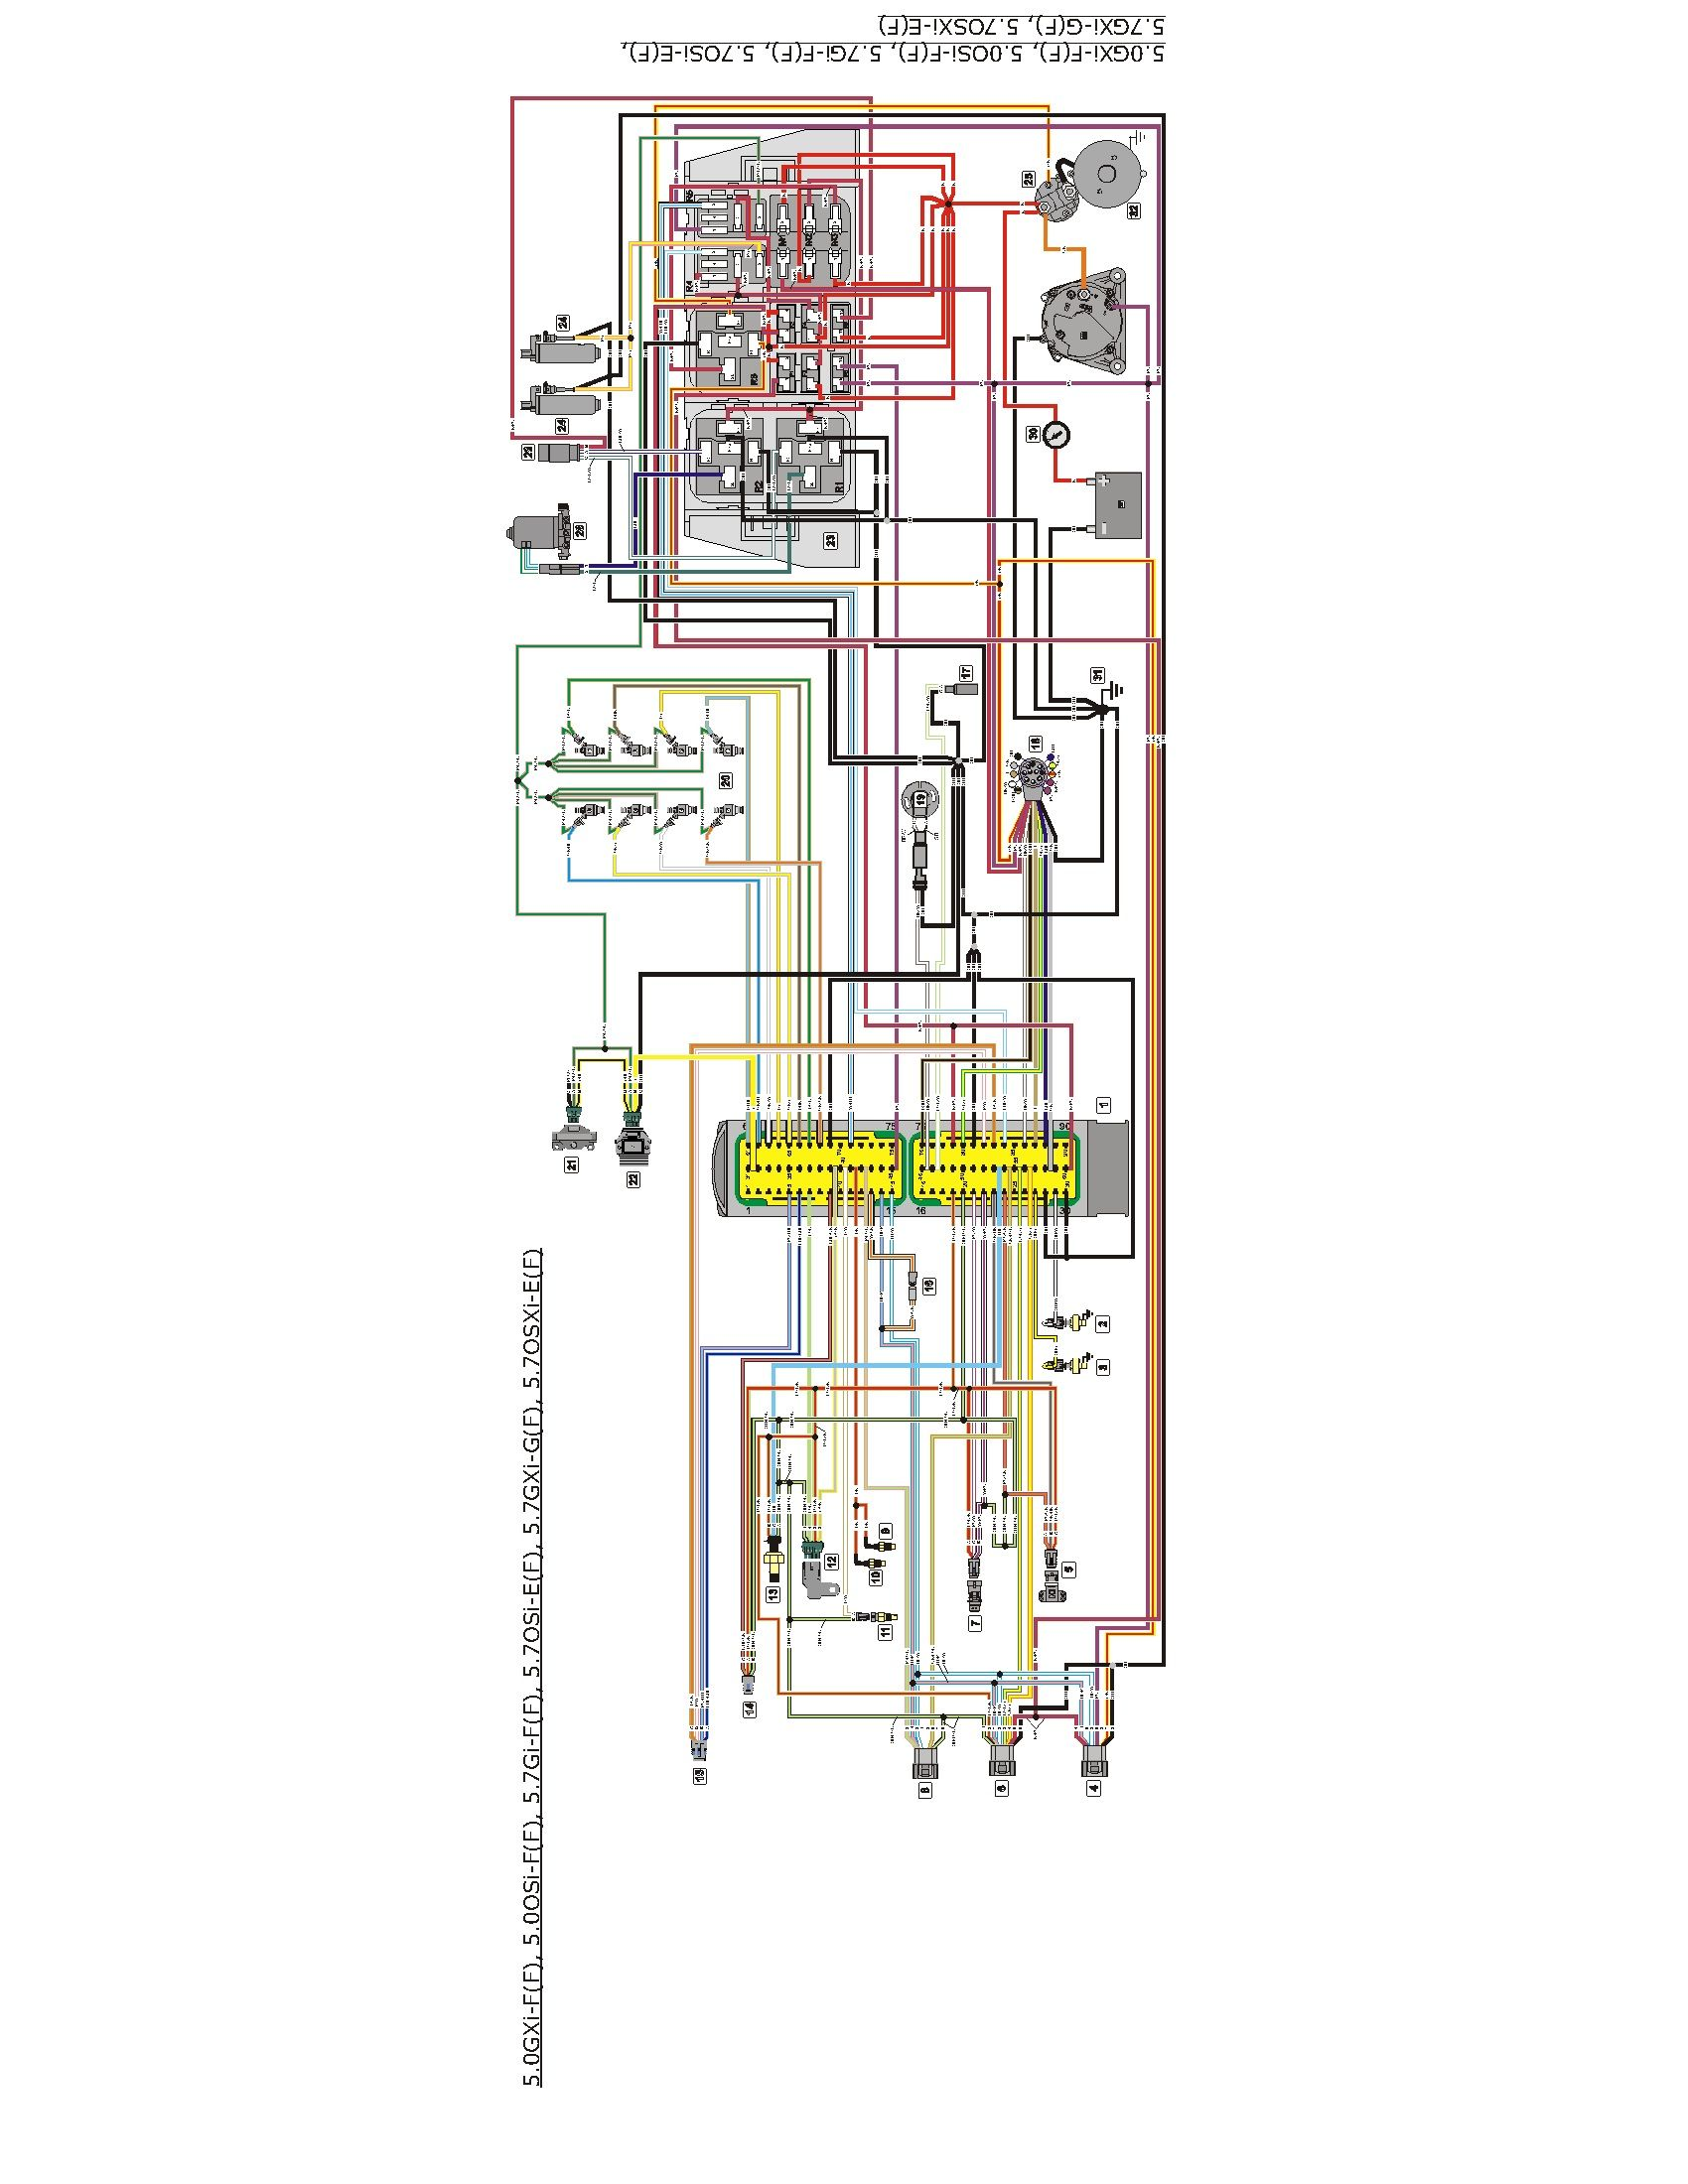 1985 volvo alternator wiring everything wiring diagram 1985 volvo alternator wiring [ 1700 x 2200 Pixel ]